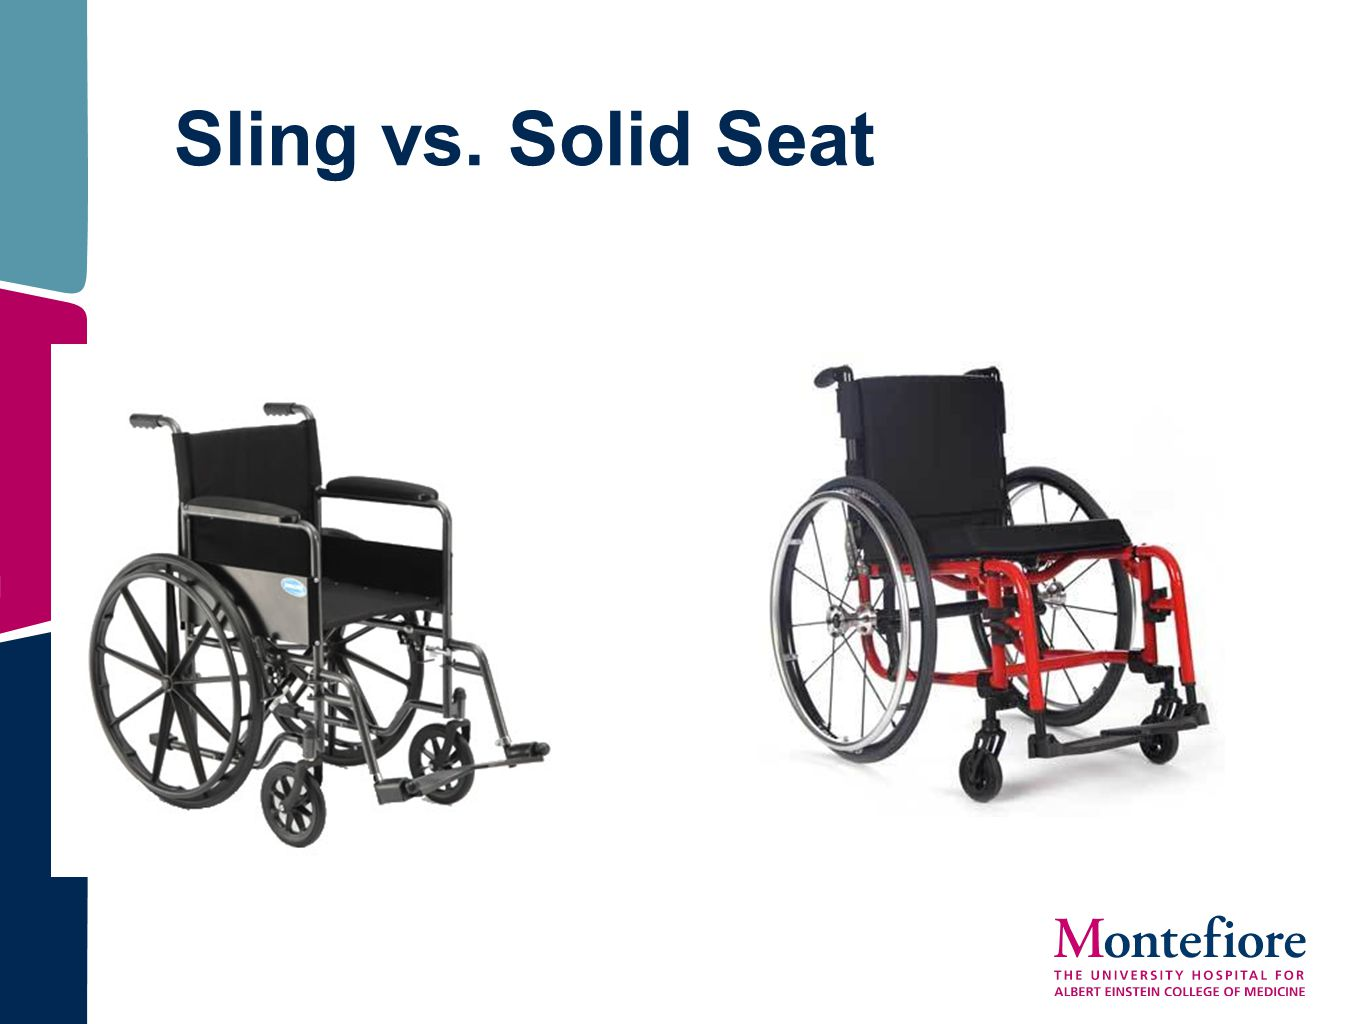 Sling vs. Solid Seat